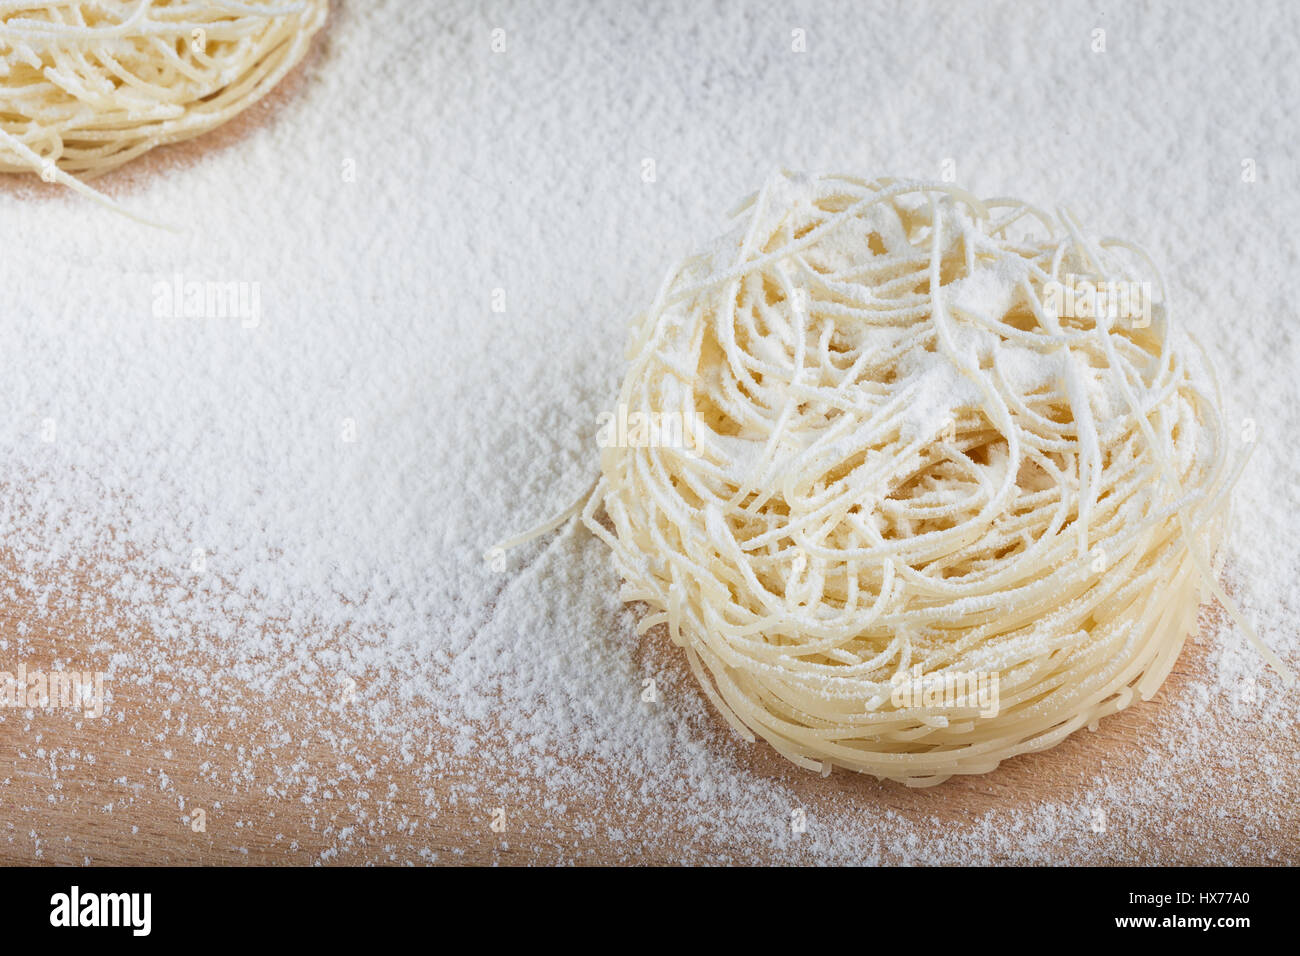 Italian Pasta With White Flour Isolated On Rustic Wooden Background Accessories